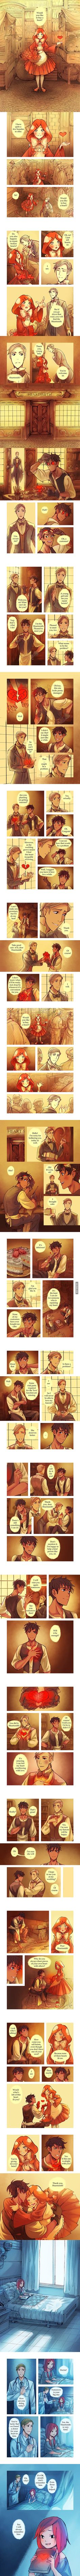 The Heartsmith comic. So cute! --> The Heartsmith looks like Percy Jackson with Leo's skin color and personality. Kind of sad when I think about it because I can see Leo doing something like this. Beste Comics, Cute Stories, Short Stories, Cute Love Stories, Beautiful Stories, Faith In Humanity Restored, Plot Twist, Comic Strips, Make Me Smile